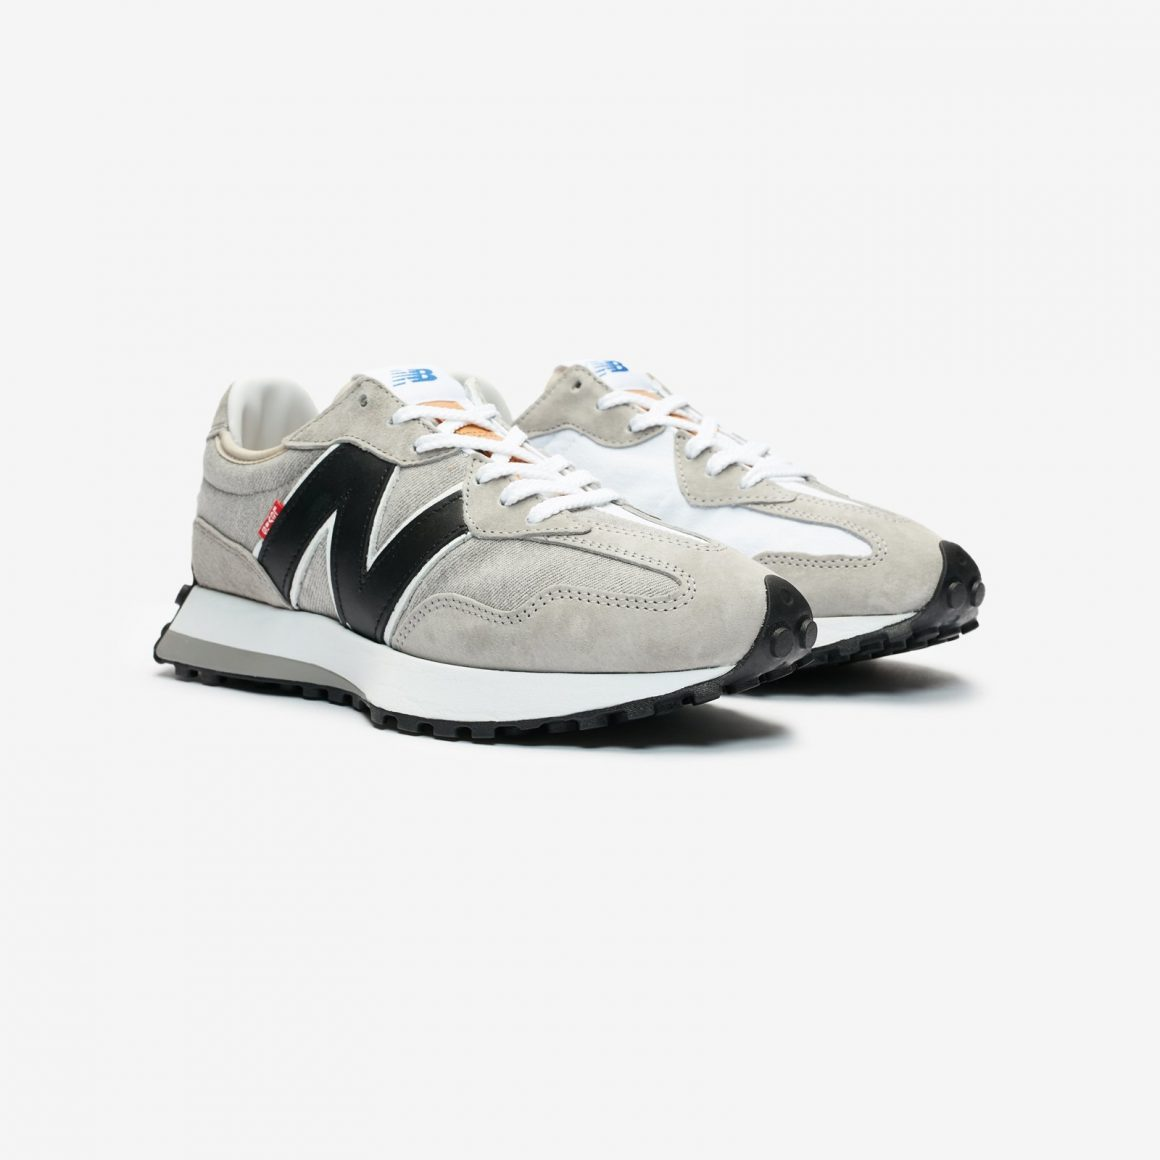 Levi's x New Balance 327 ''Grey'' - MS327LVB